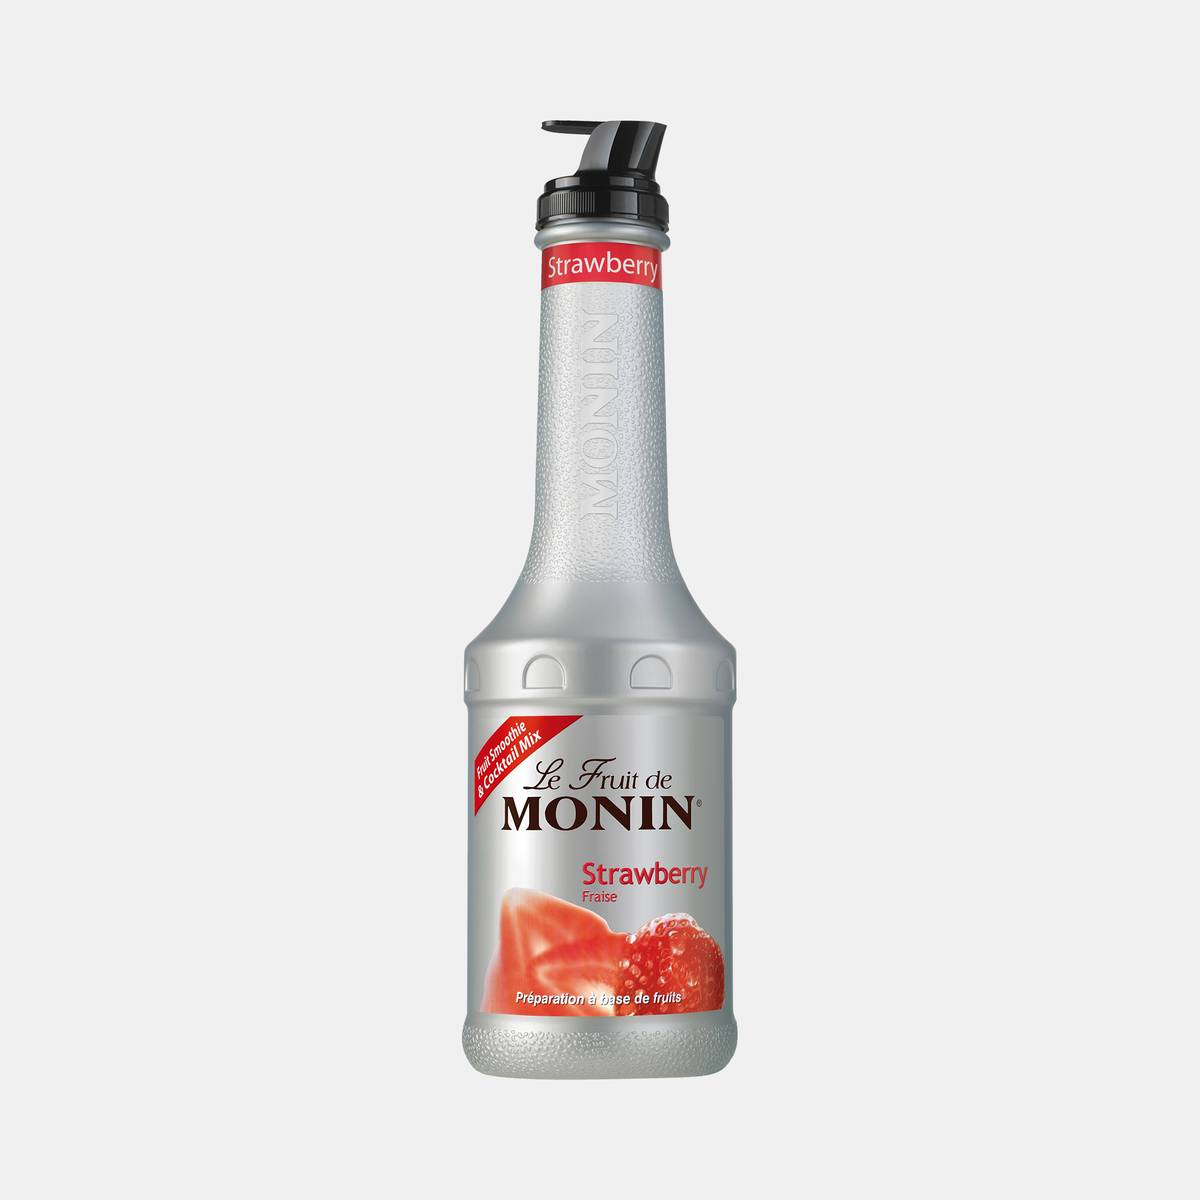 Monin Strawberry Puree Fruit Mix 1 Liter Bottle